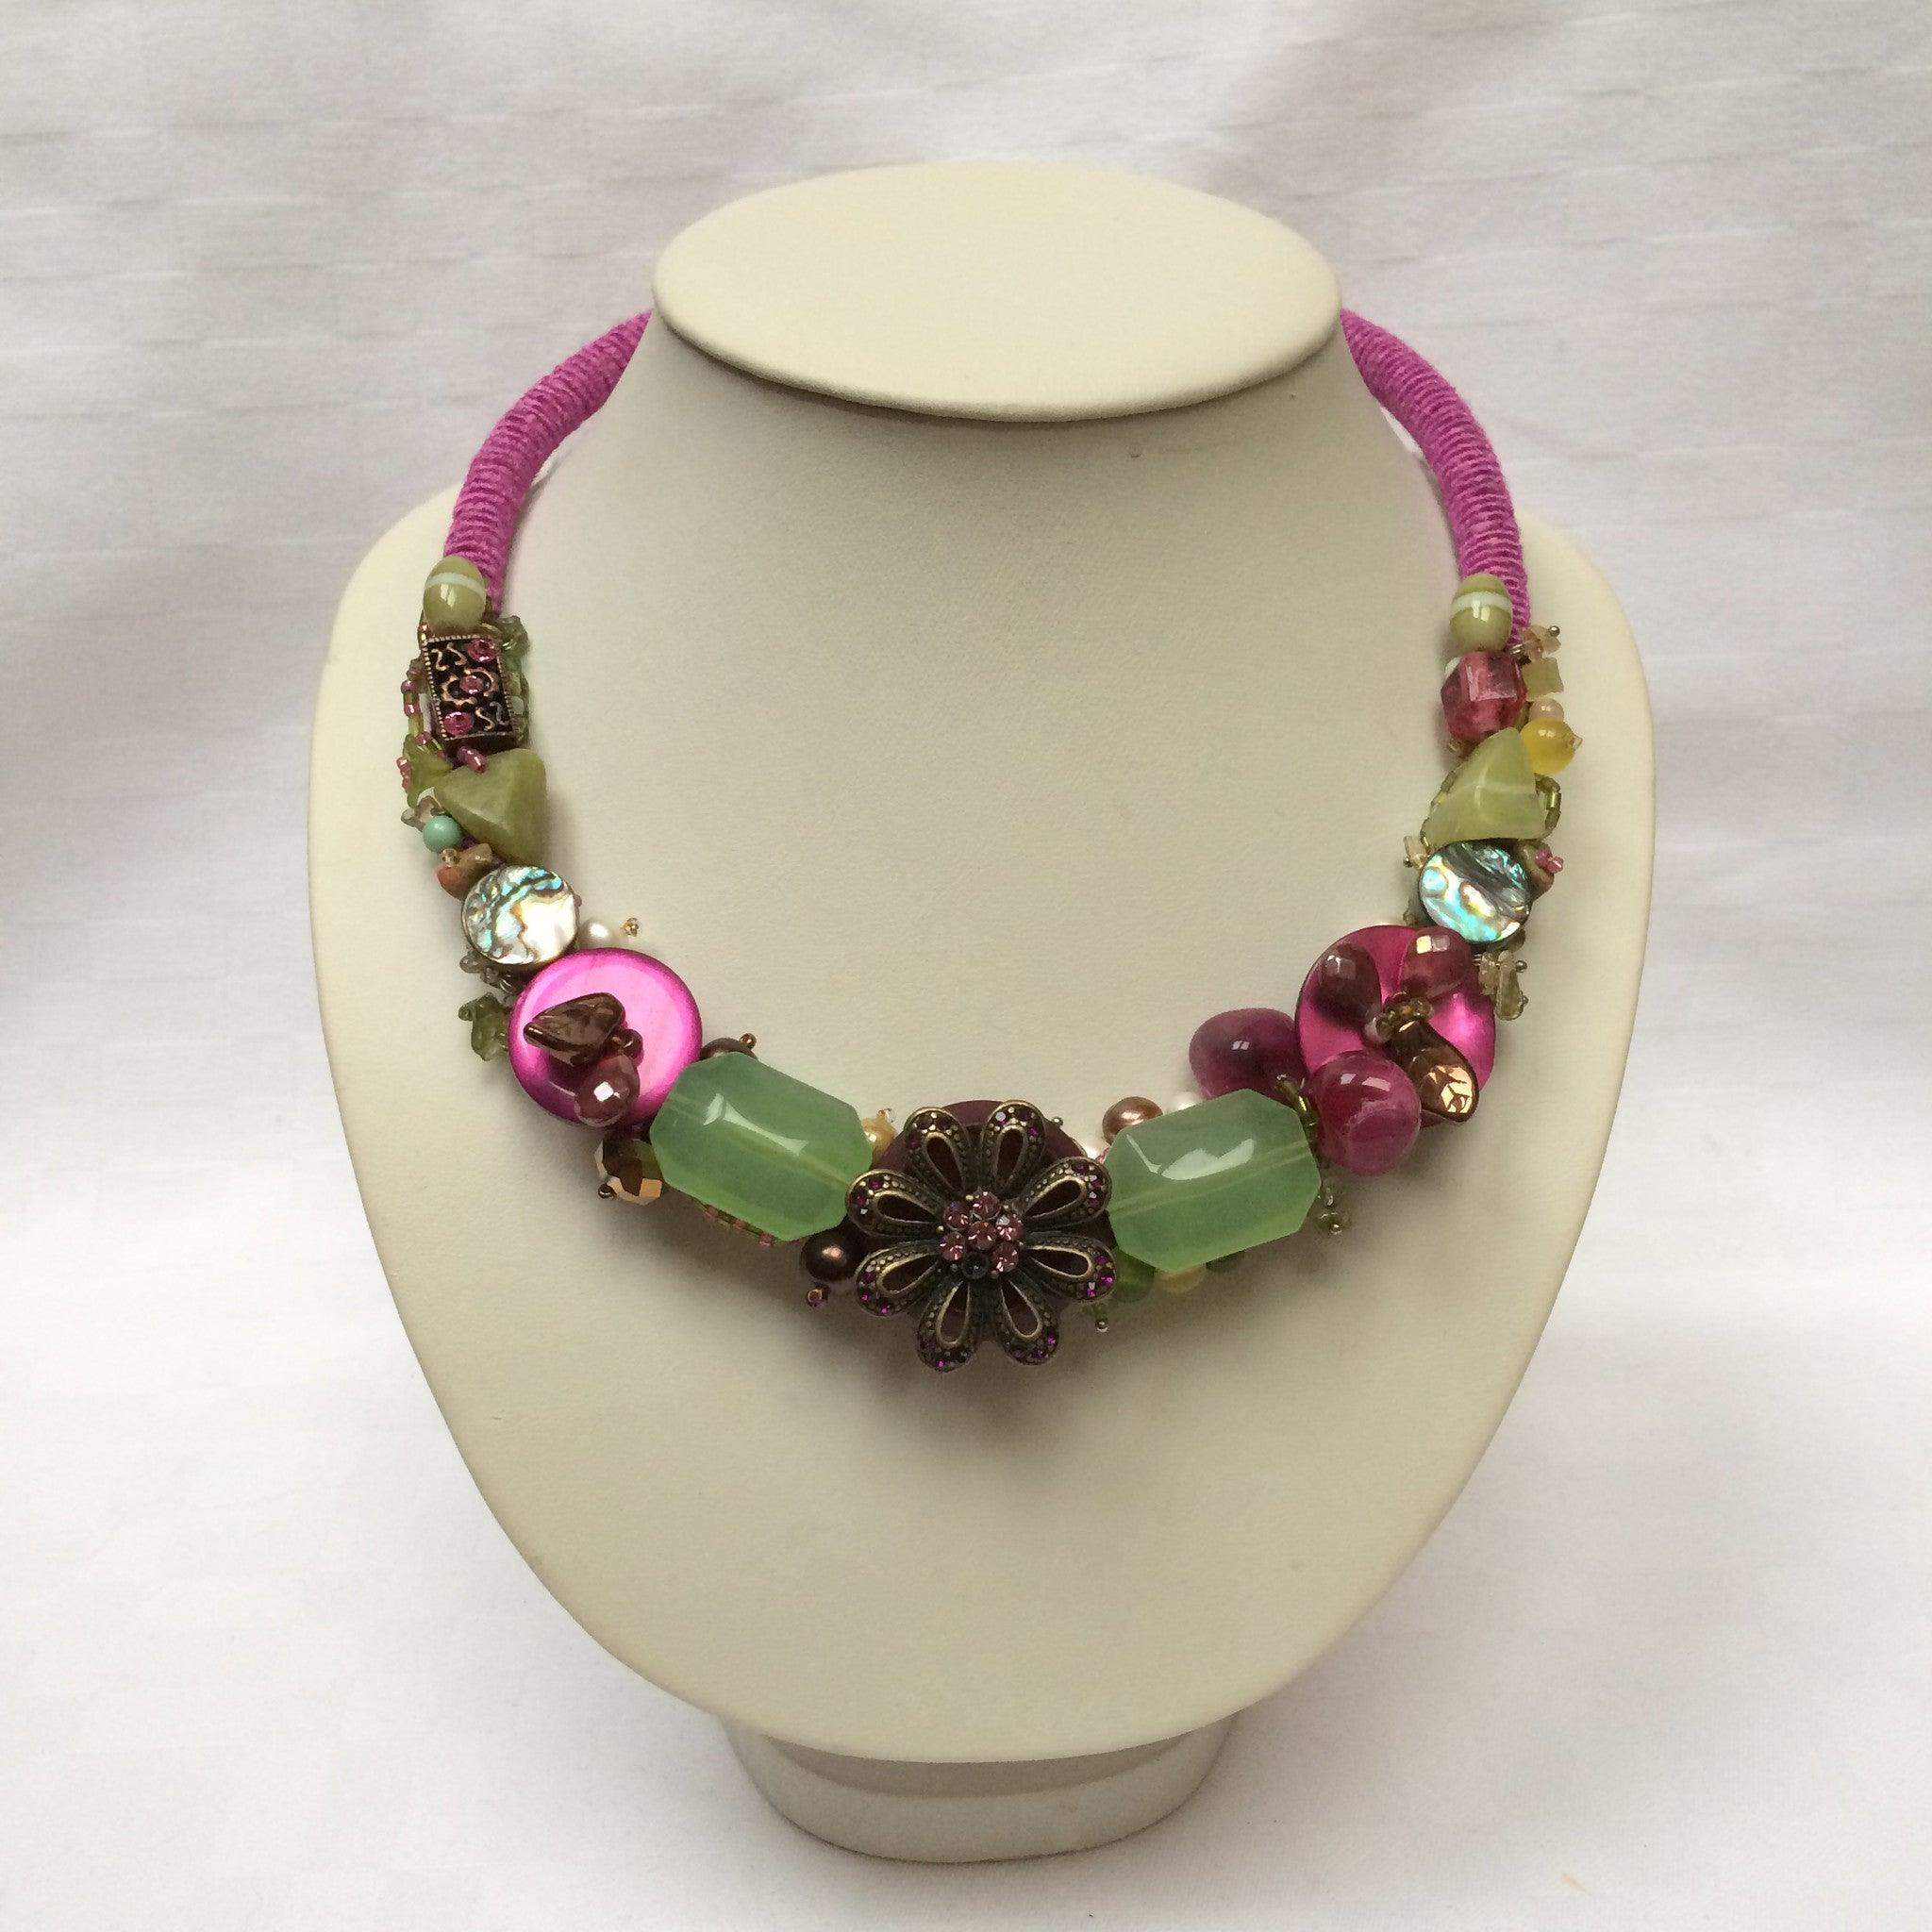 Green & Pink Collar necklace